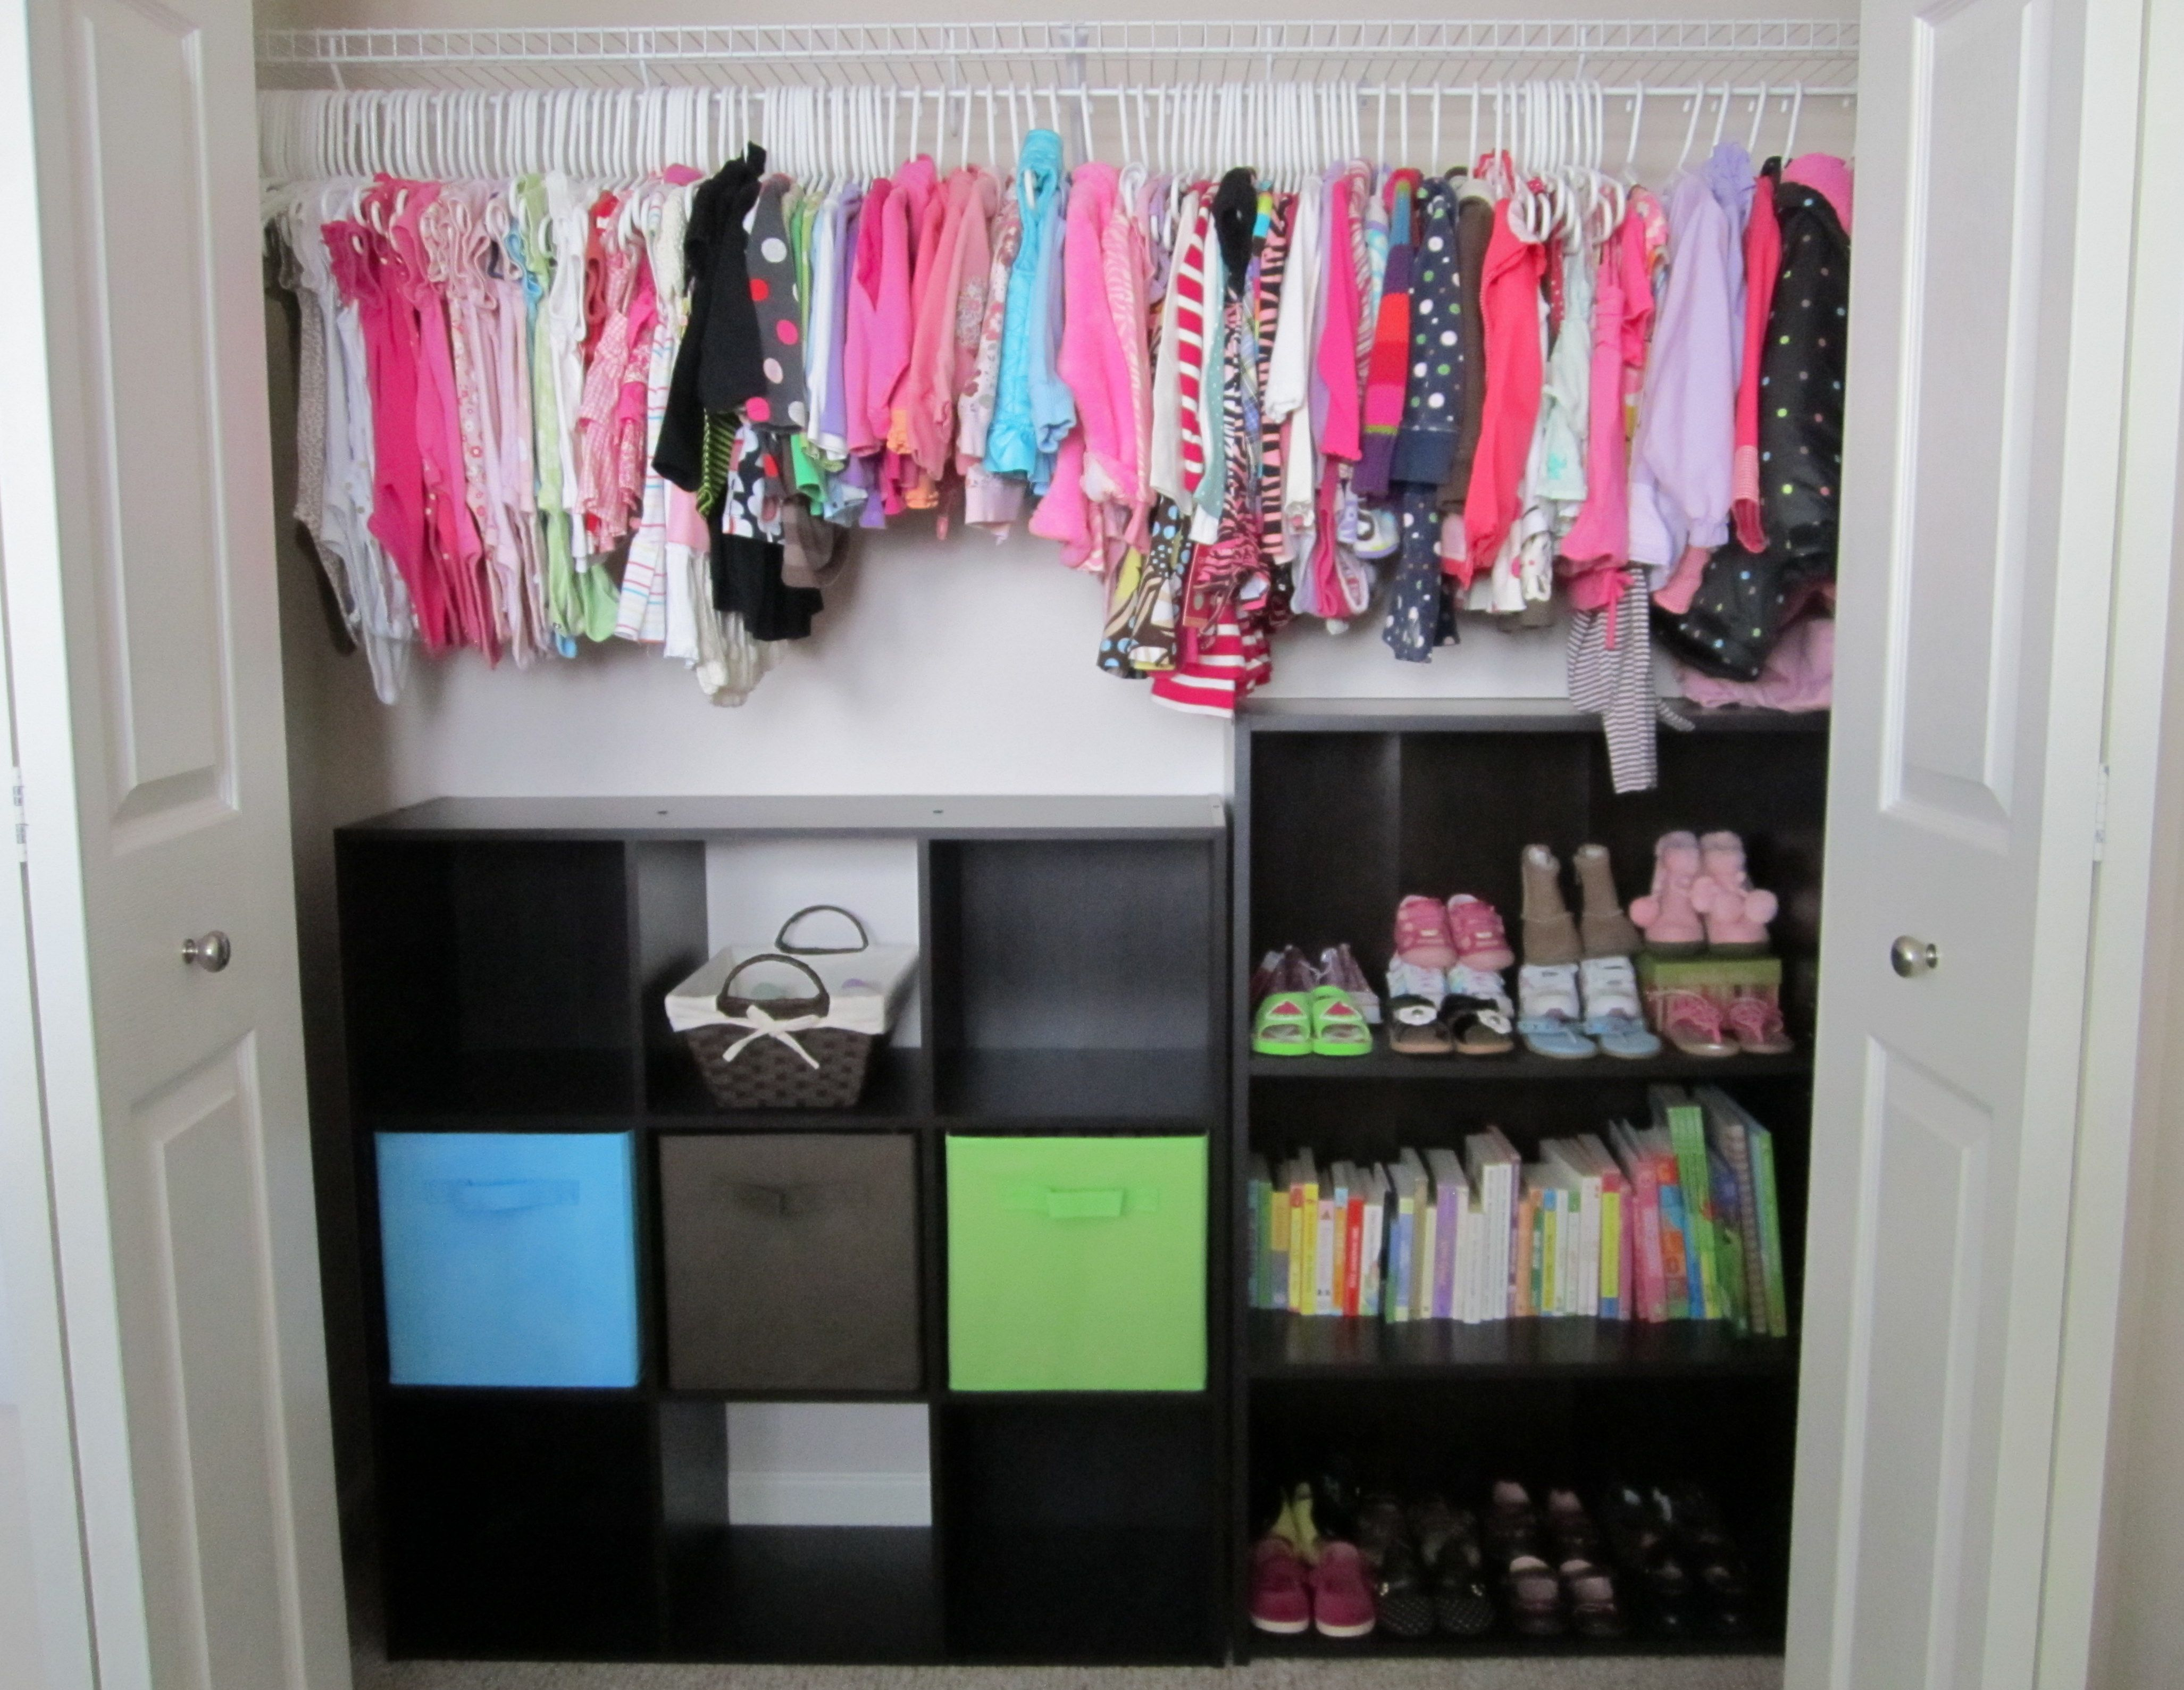 Closet 9 Cube Organizer 3 Tiered Book Shelf From Target Makes